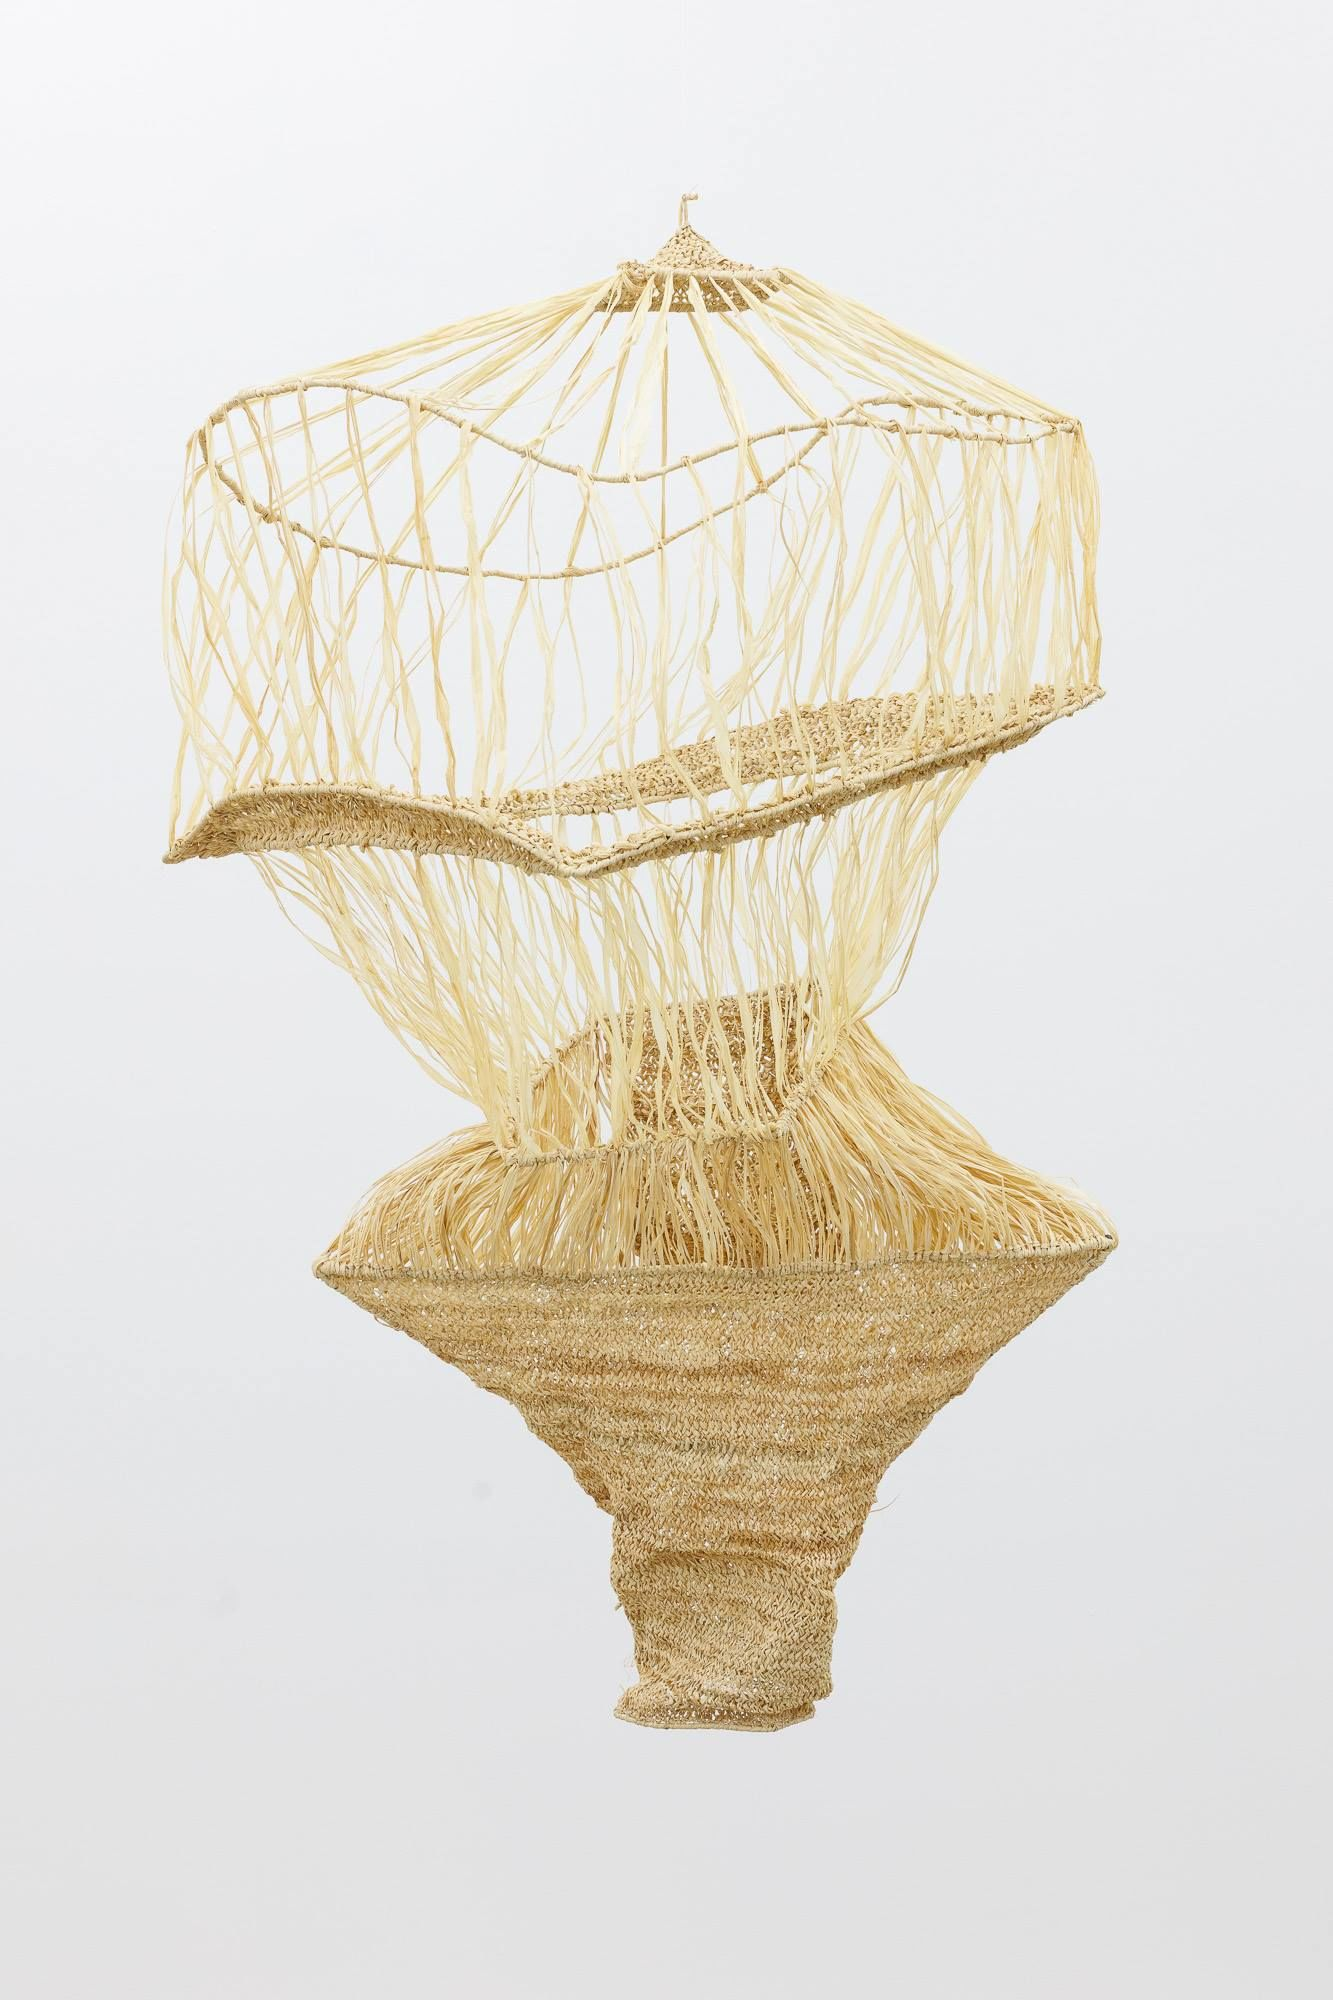 Gala Porras-Kim, One clump of raffia reconstruction